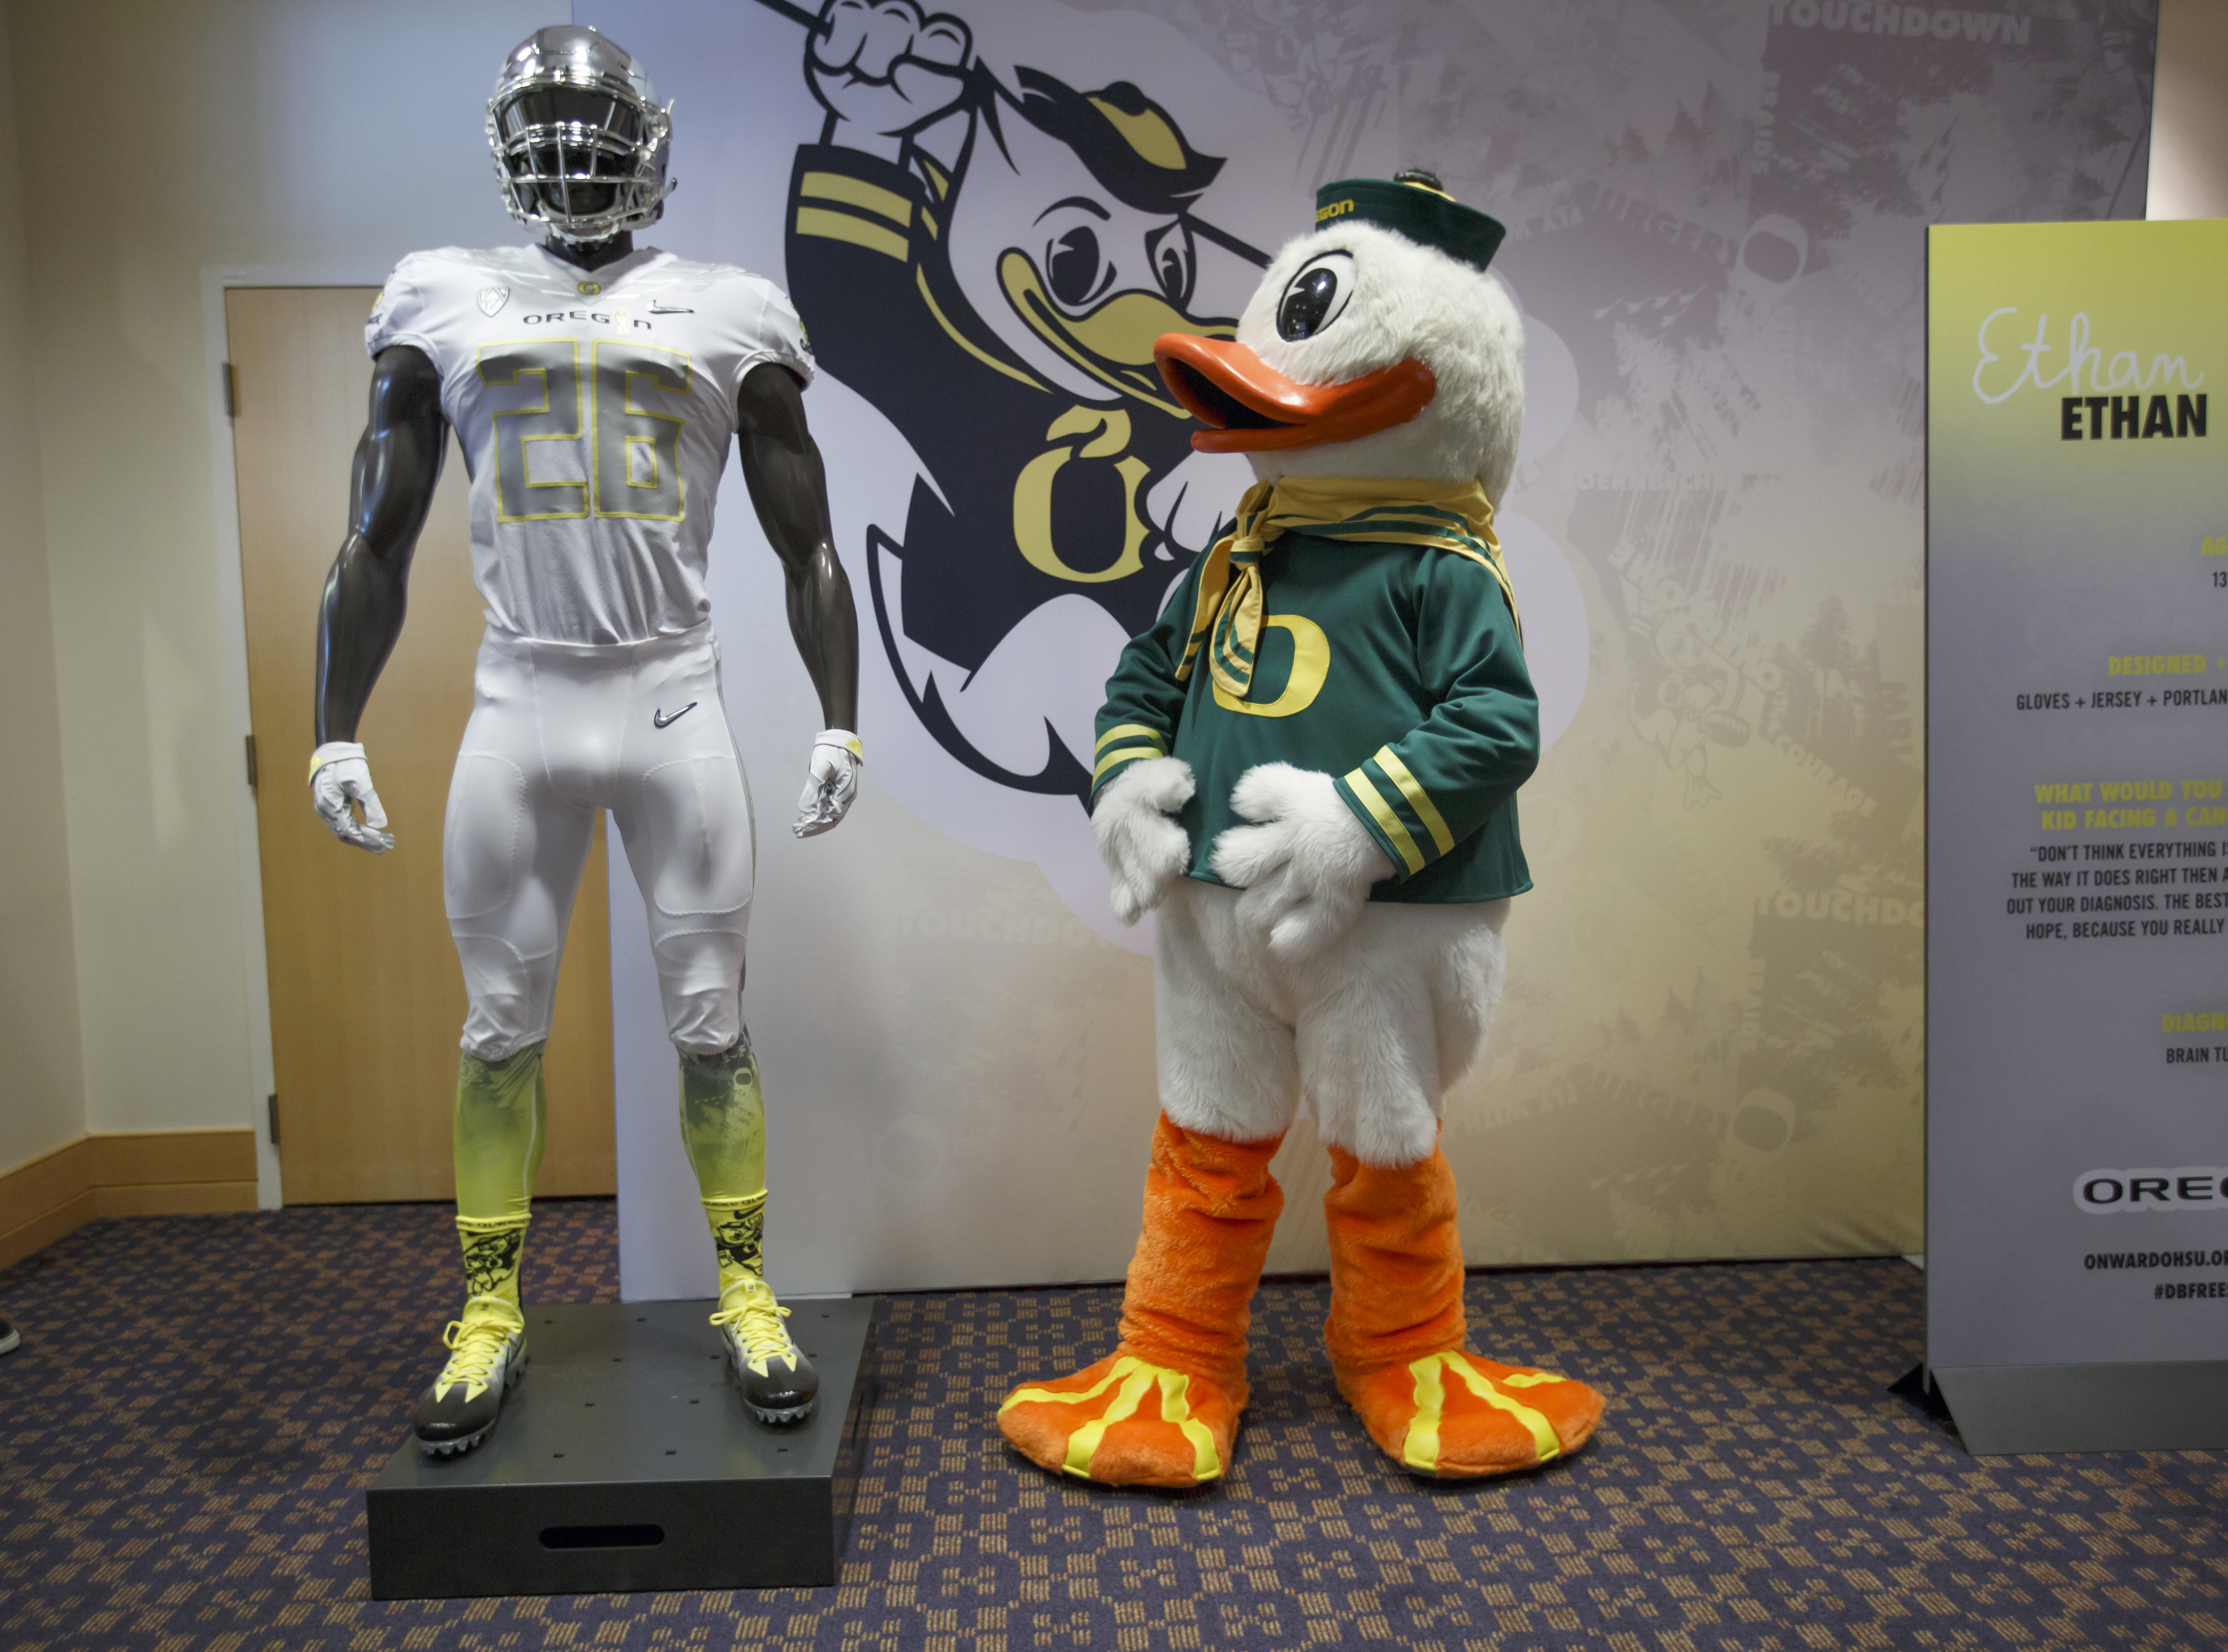 ff99db6f219 Nike unveiled a new football uniform designed for the University of Oregon  through a partnership with OHSU Doernbecher Children s Hospital